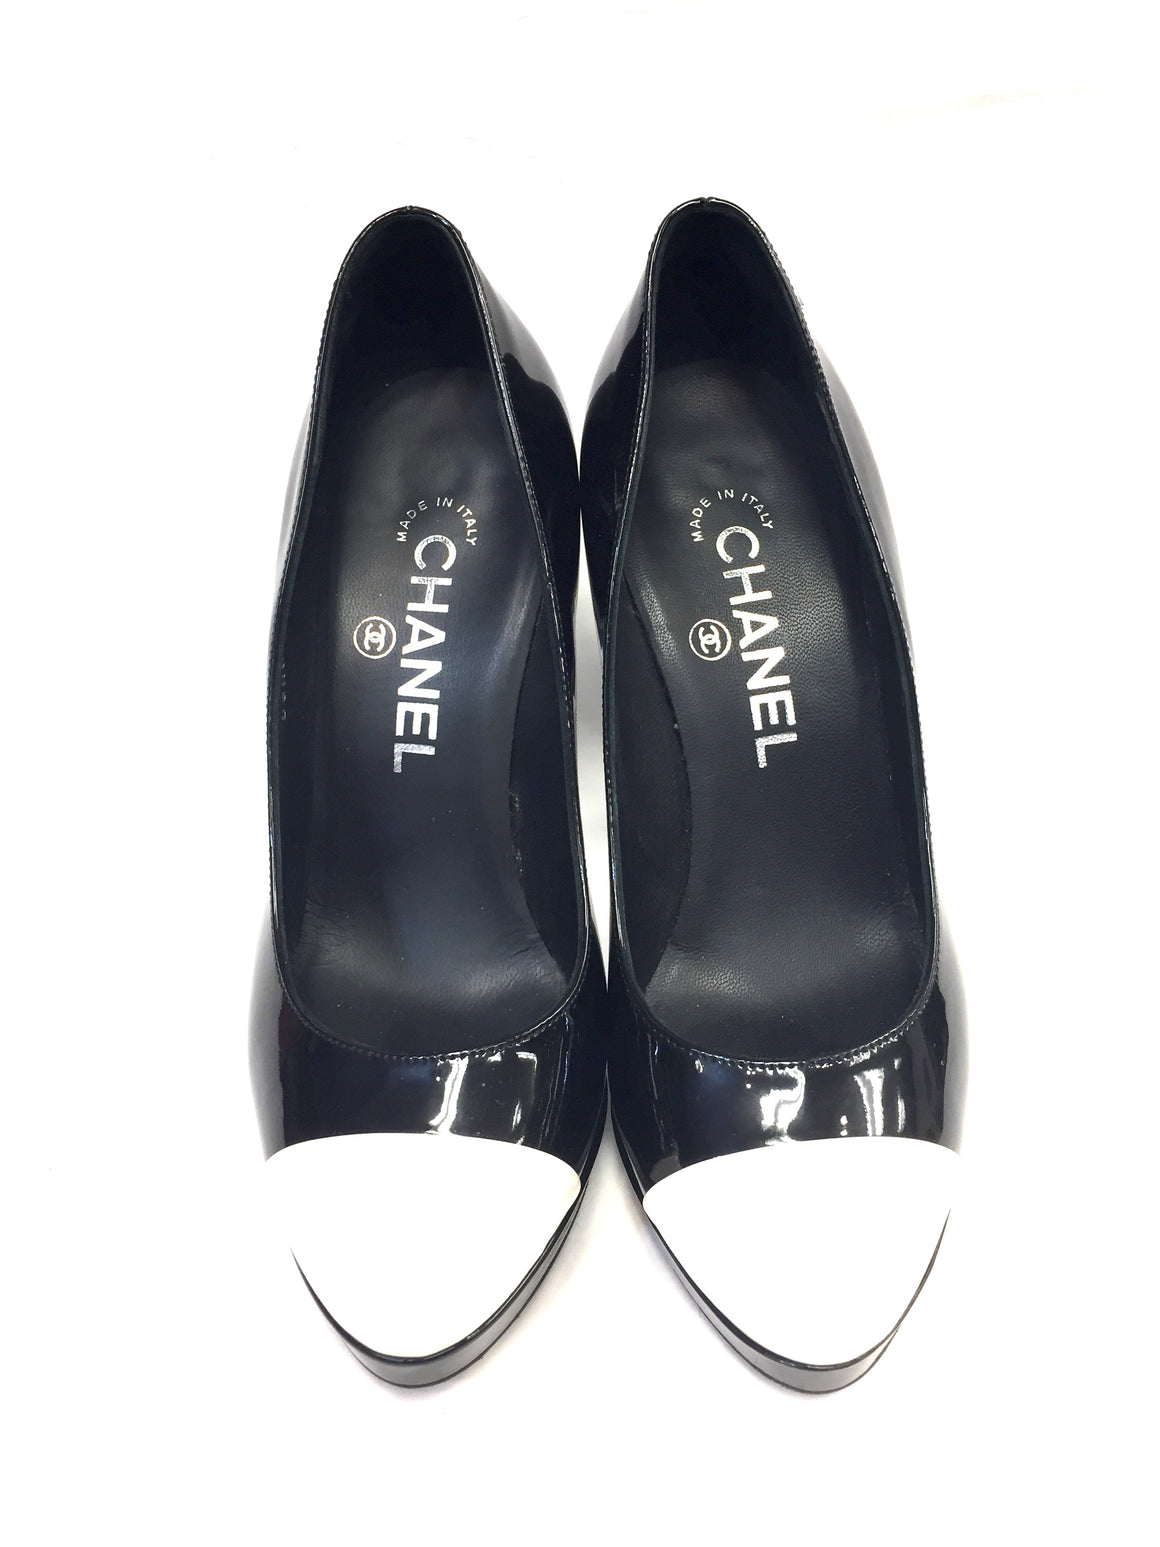 CHANEL Black Patent White Cap-Toe Sculpted Hi-Heels Platform Classic Pumps Shoes Size: 36 / 6